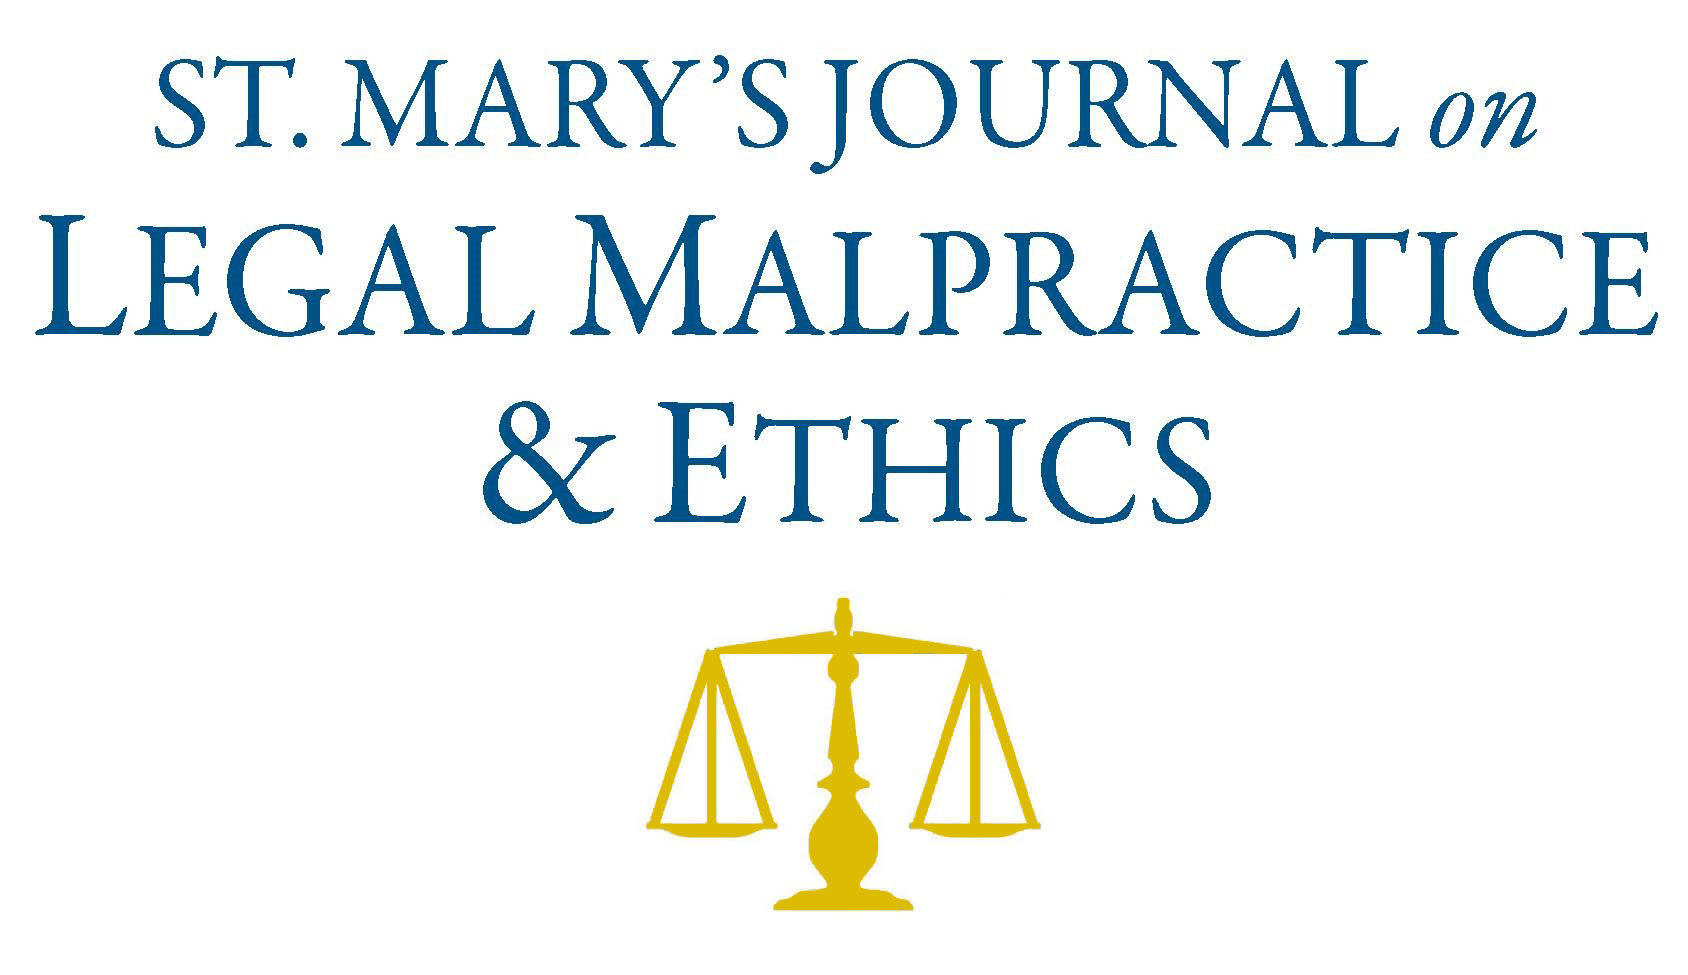 St. Mary's Journal on Legal Malpractice & Ethics